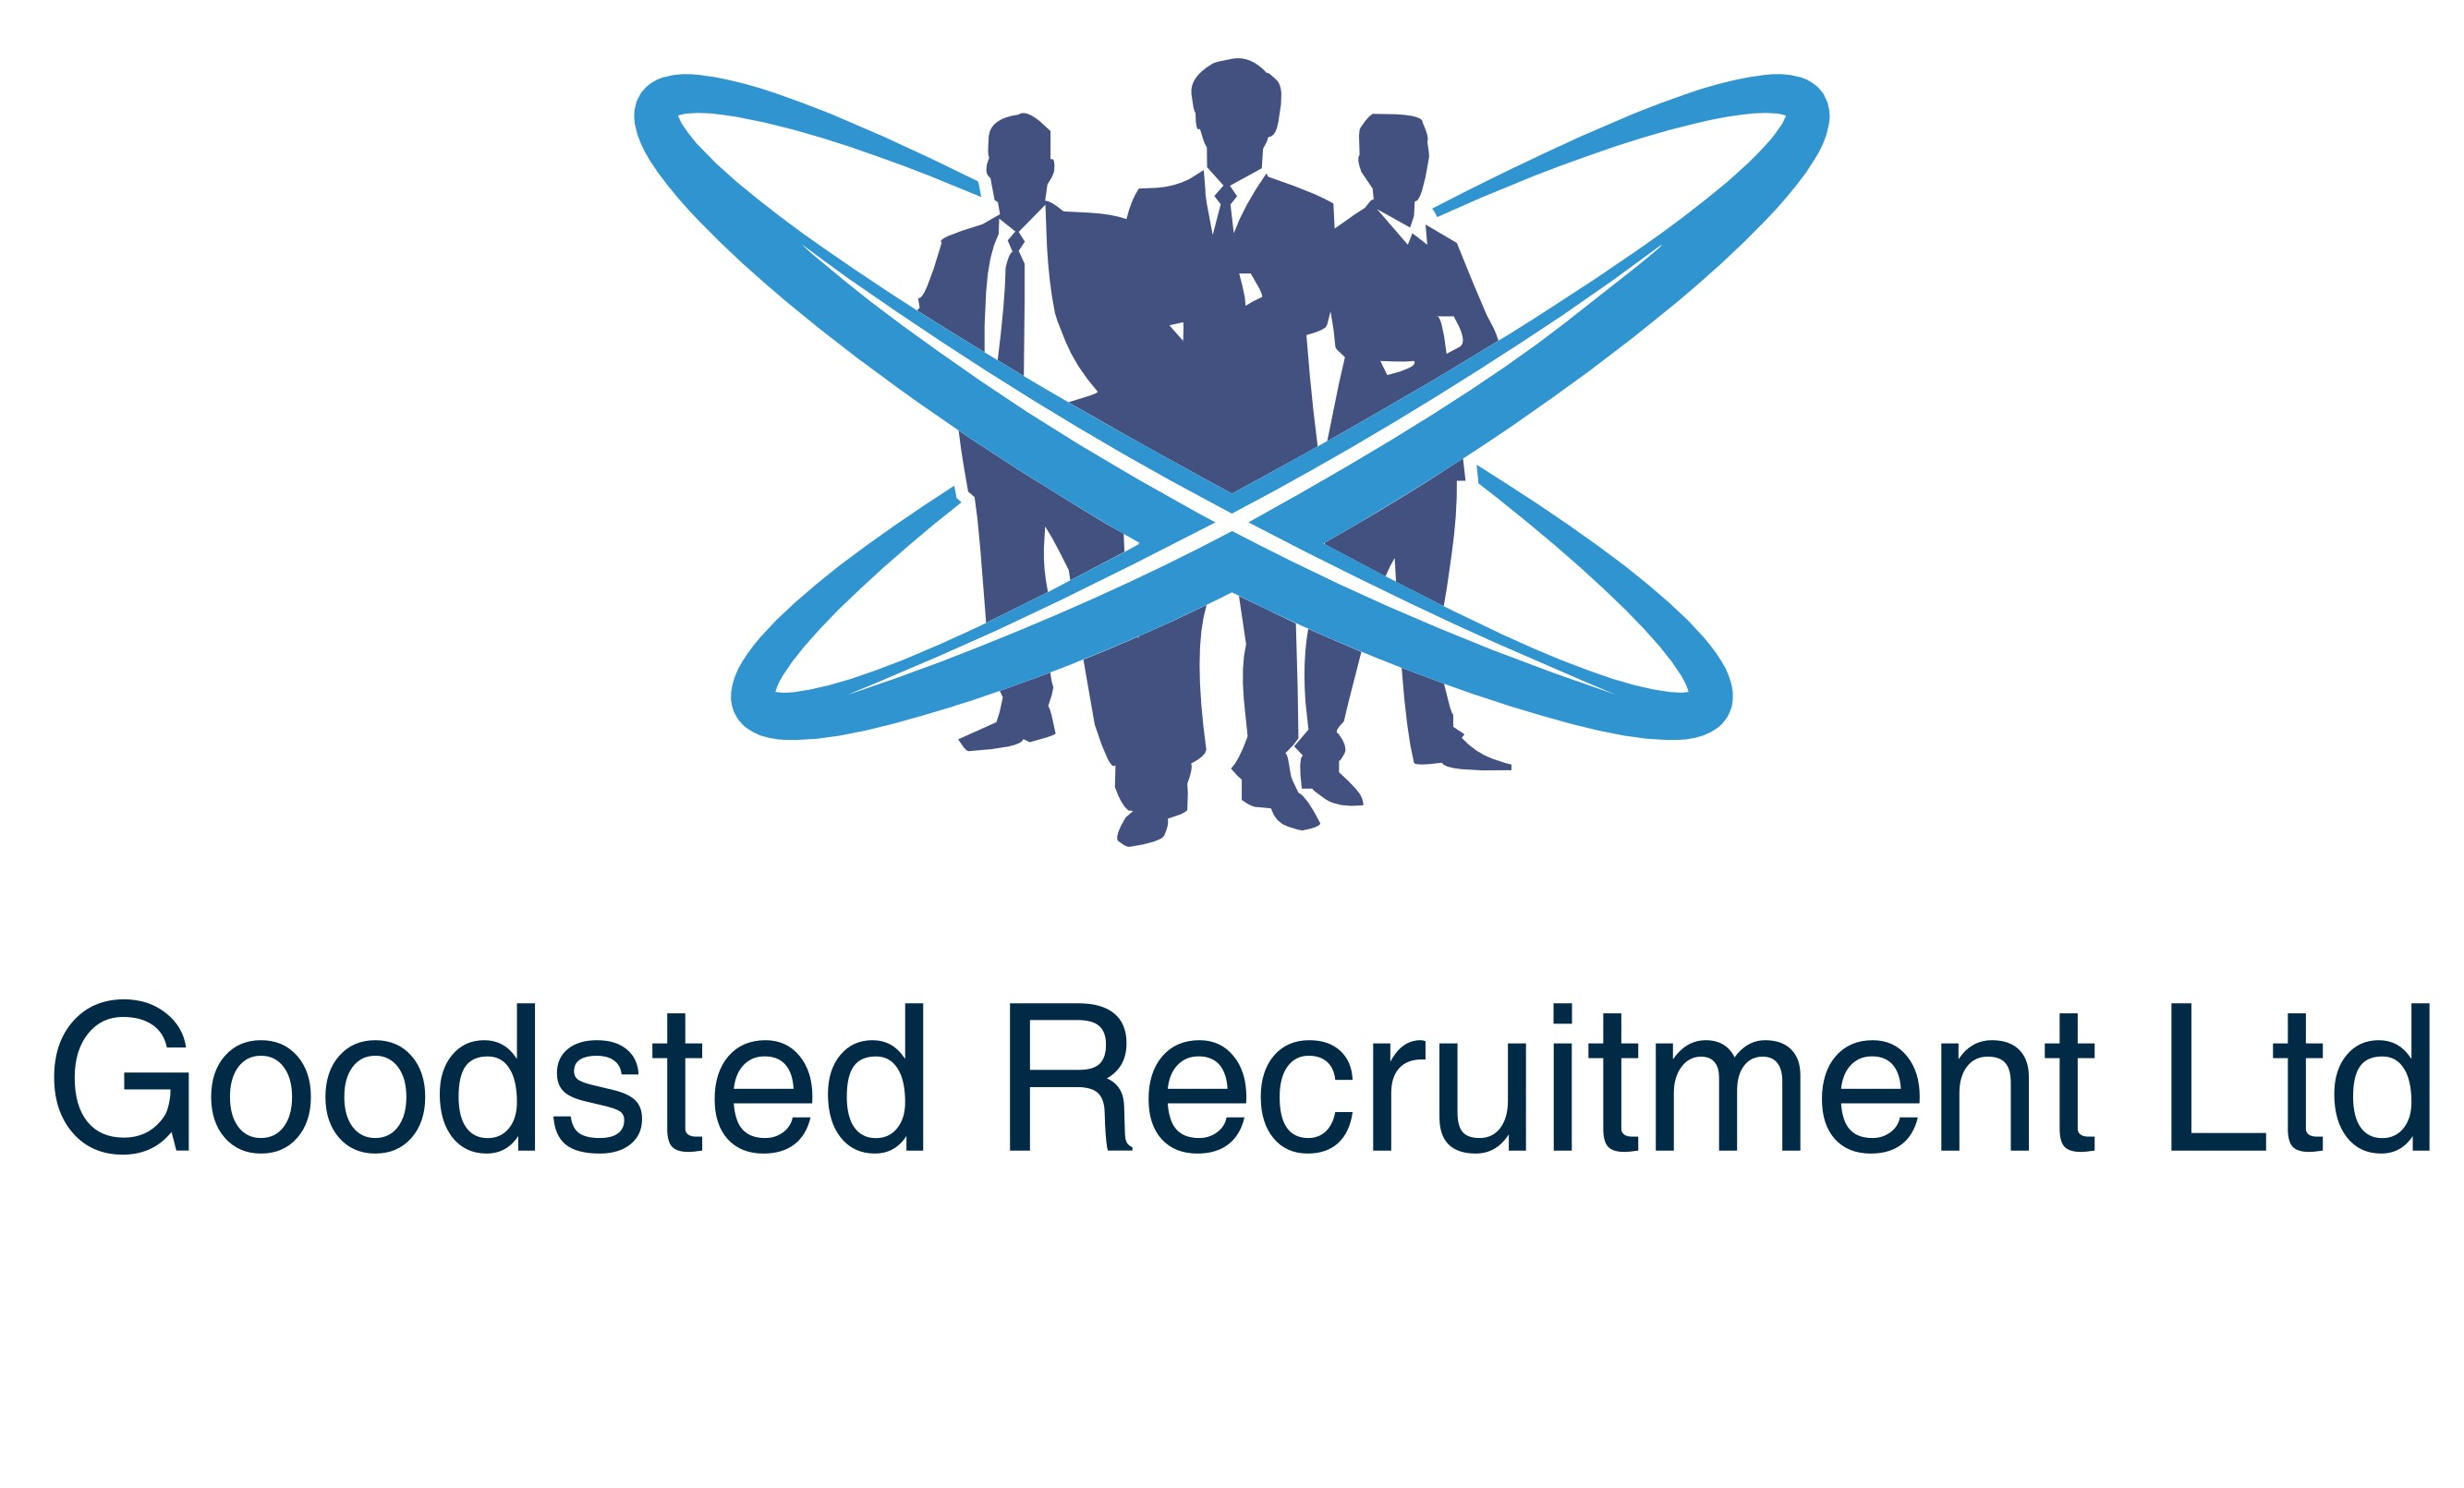 goodsted recruitment